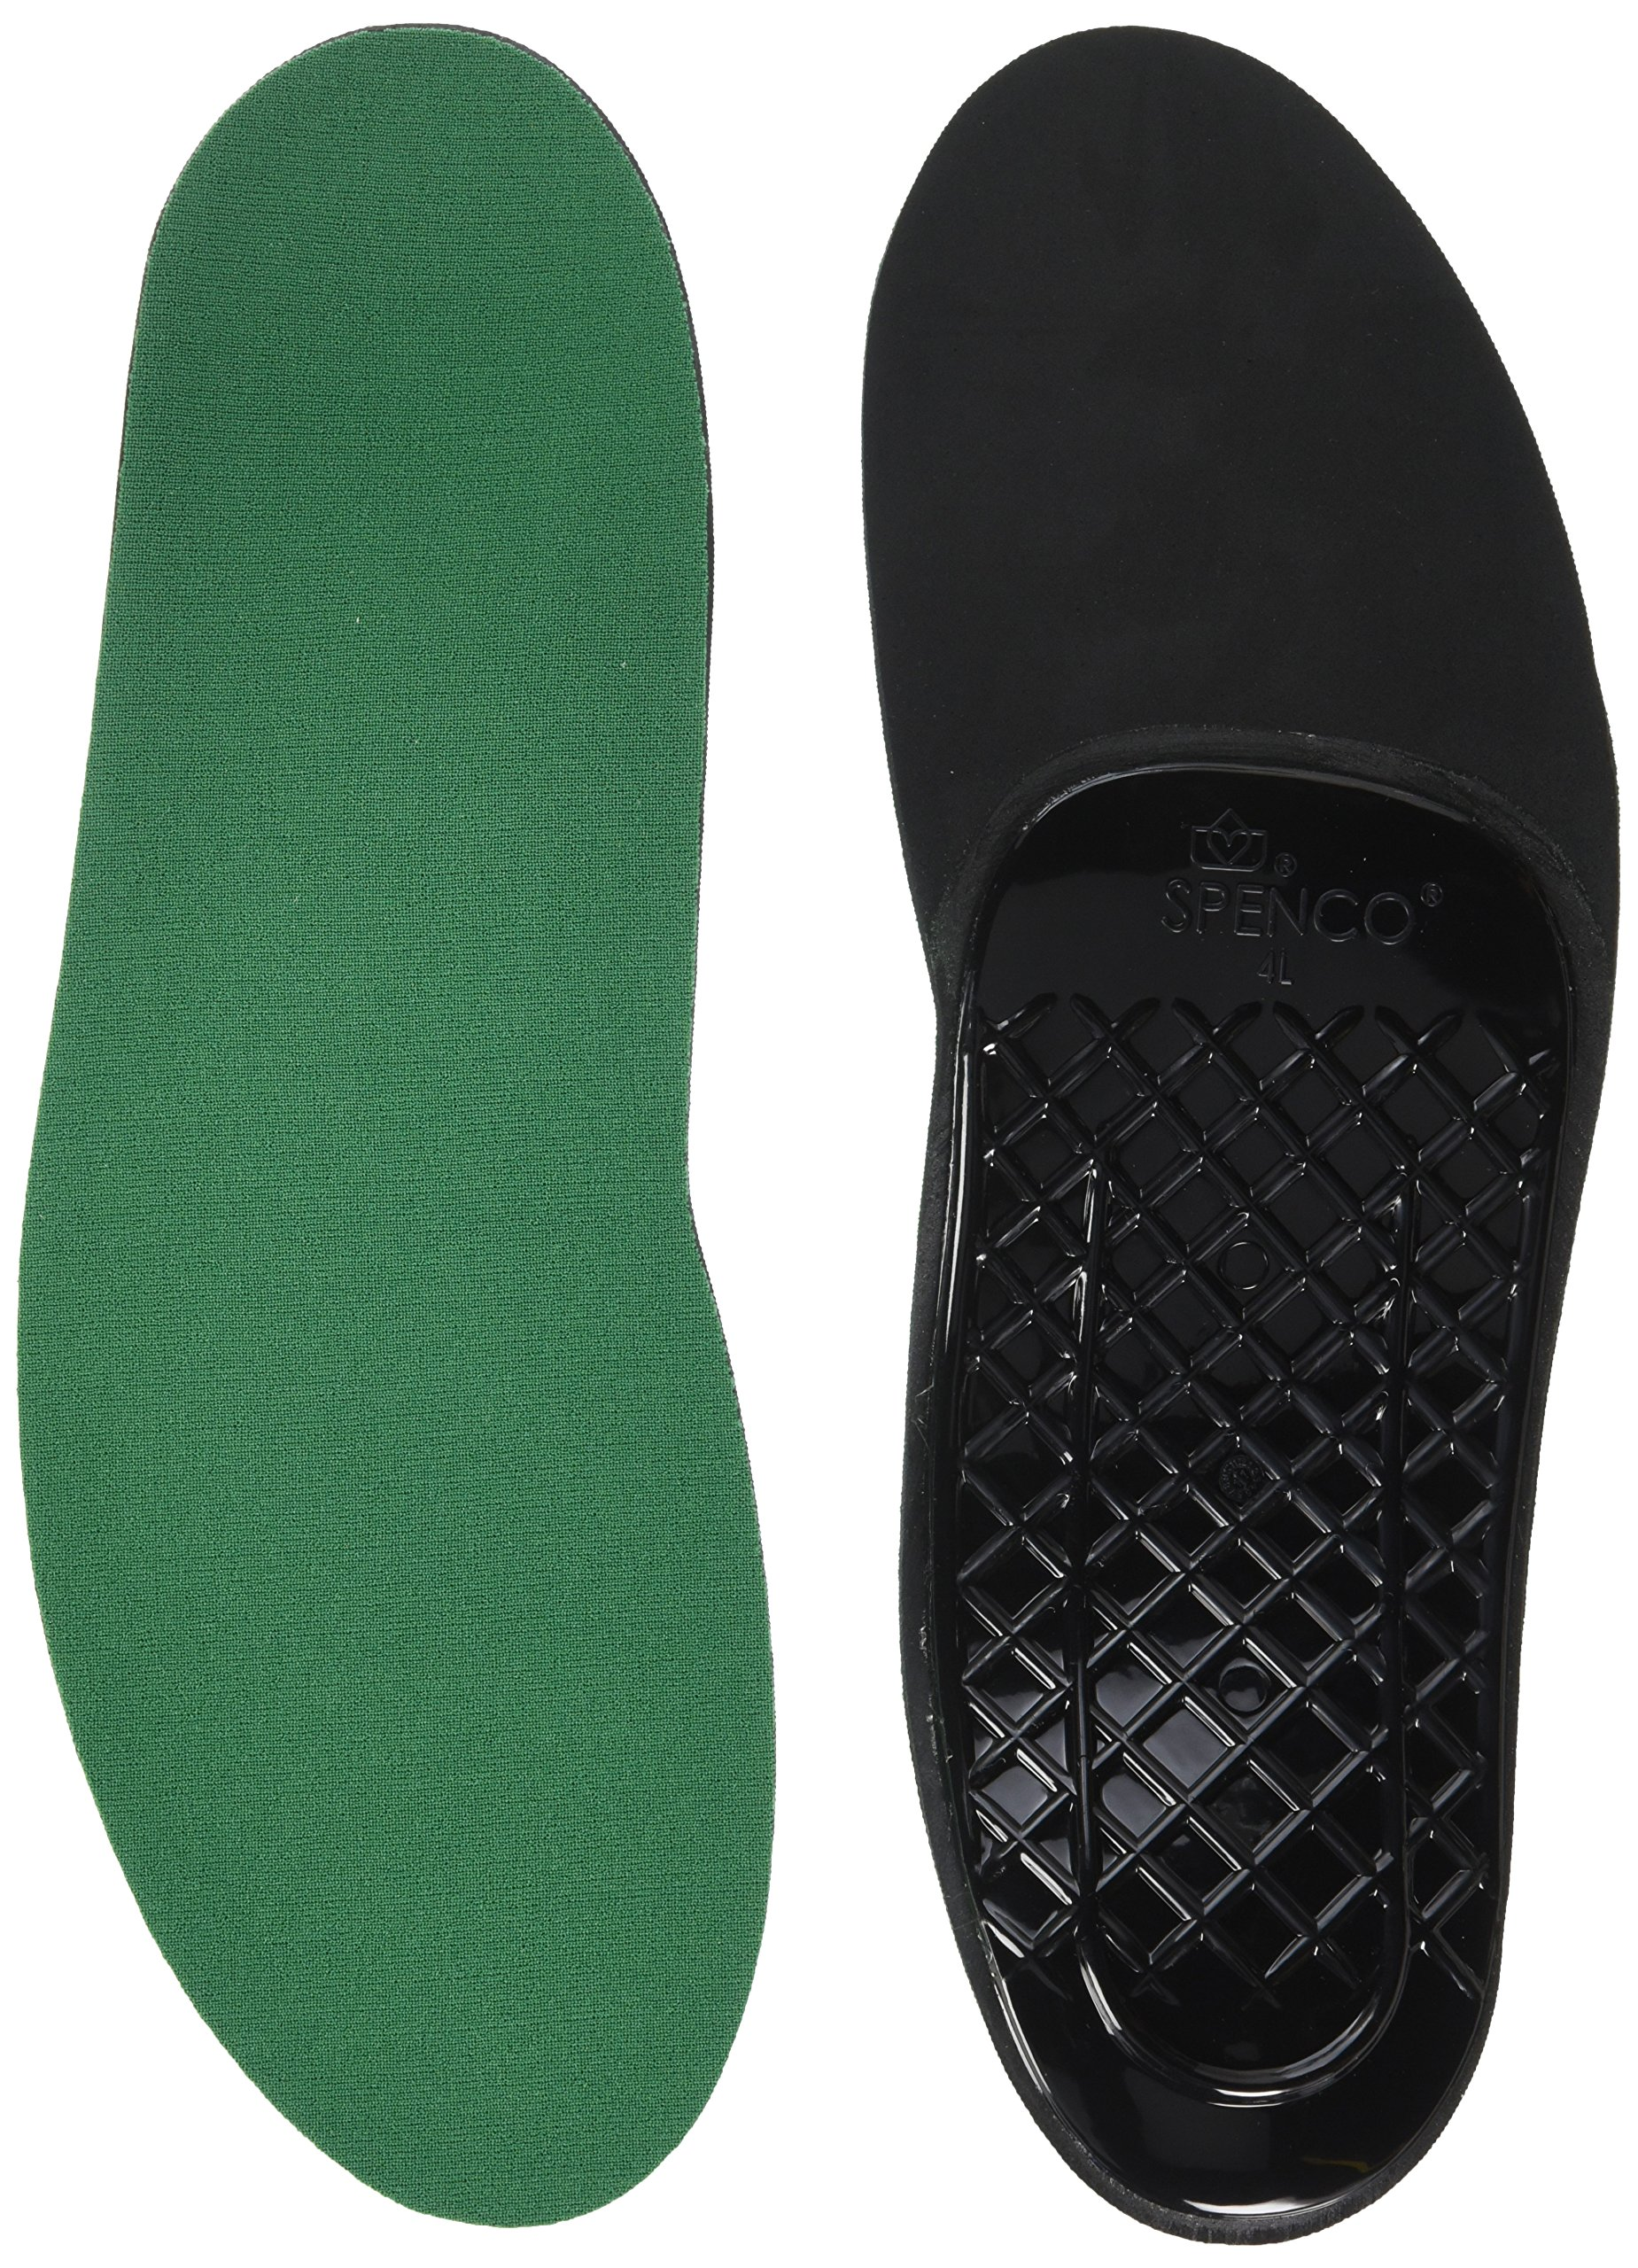 Spenco Rx Orthotic Arch Support Full Length Shoe Insoles, Women's 11-12.5/Men's 10-11.5